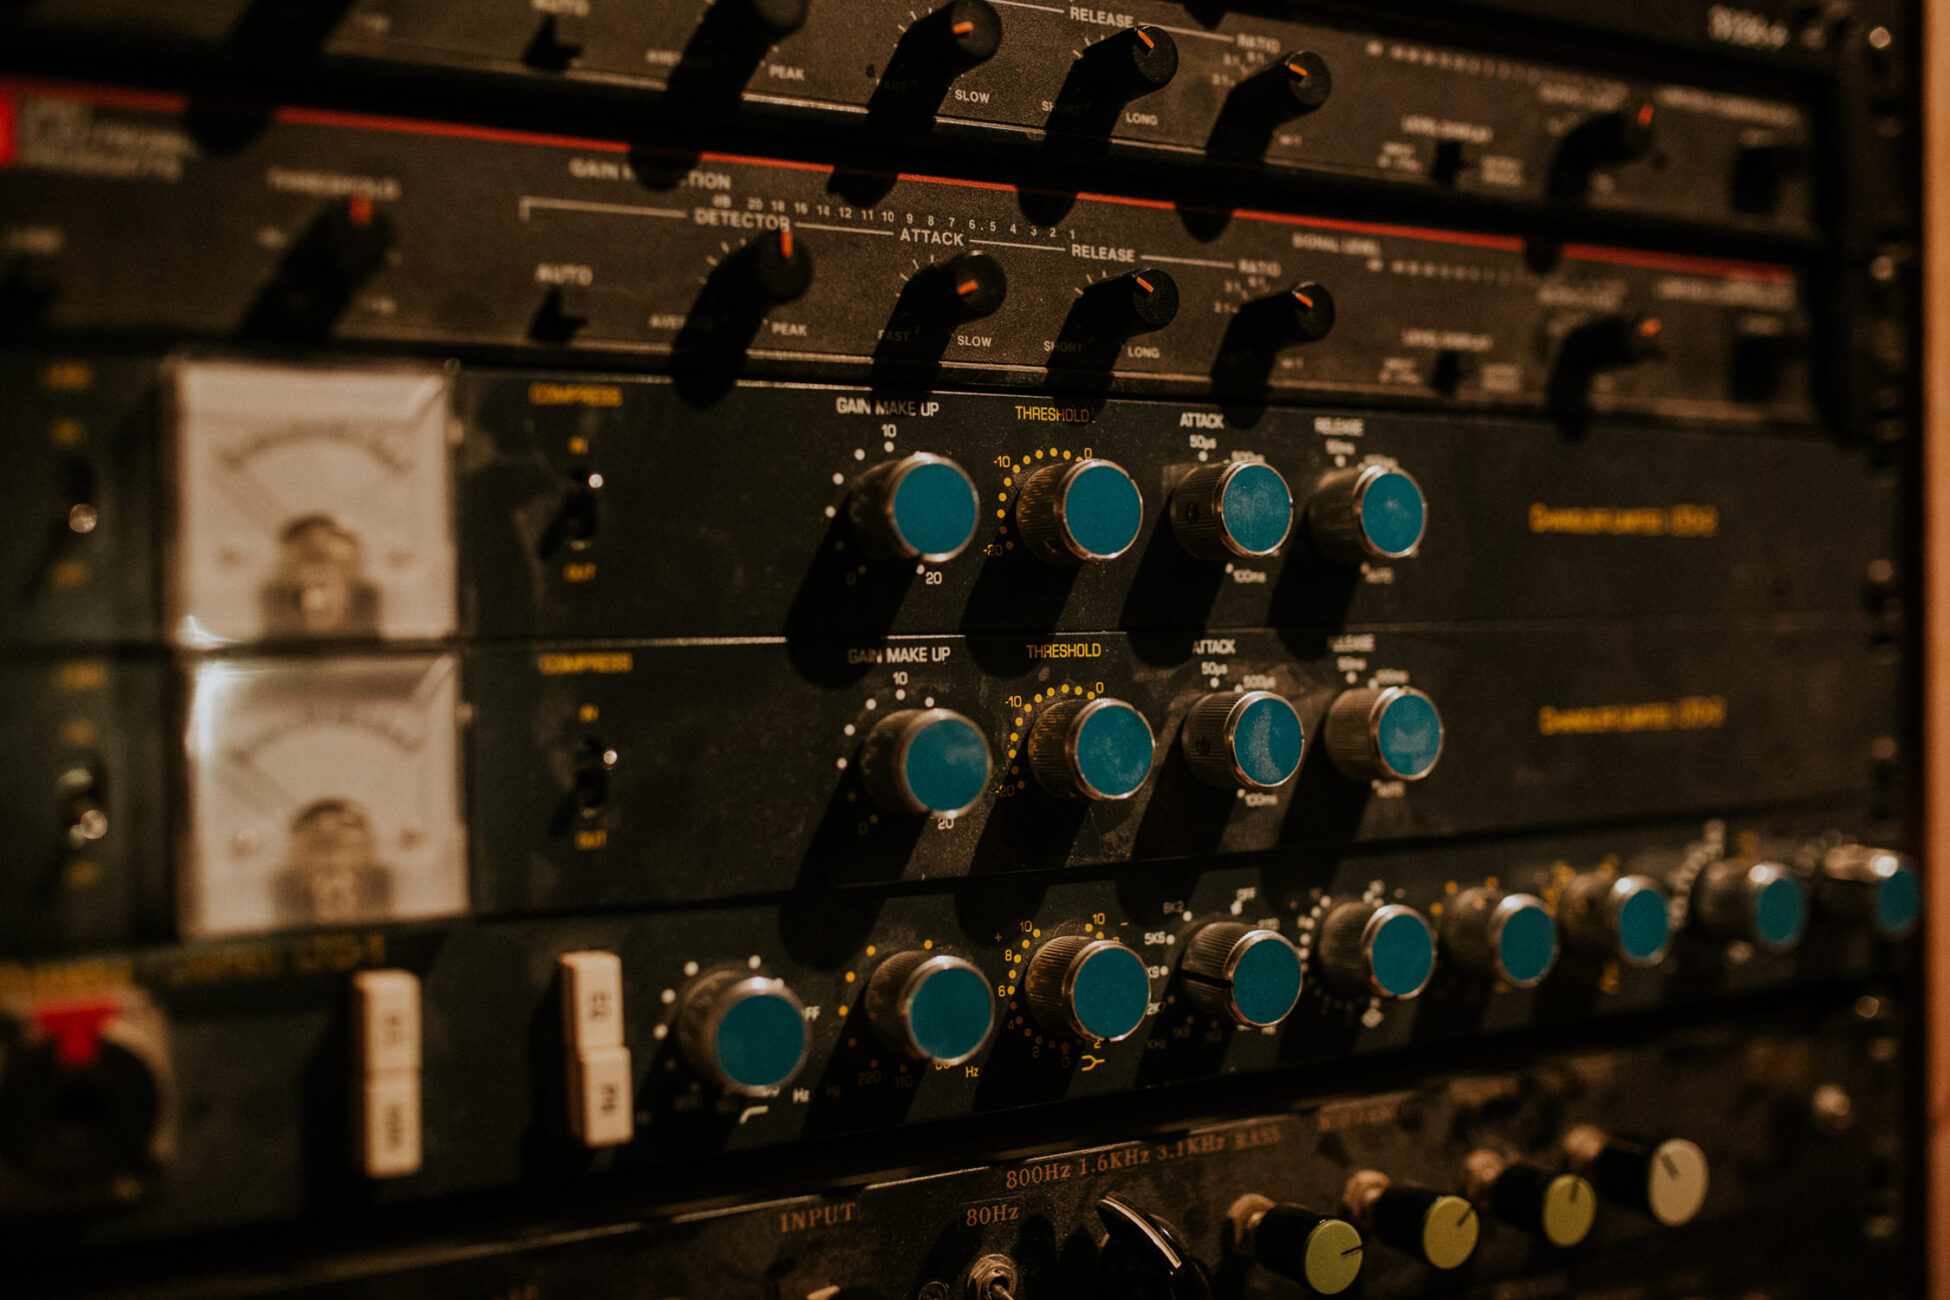 details of a mixer from a recording studio